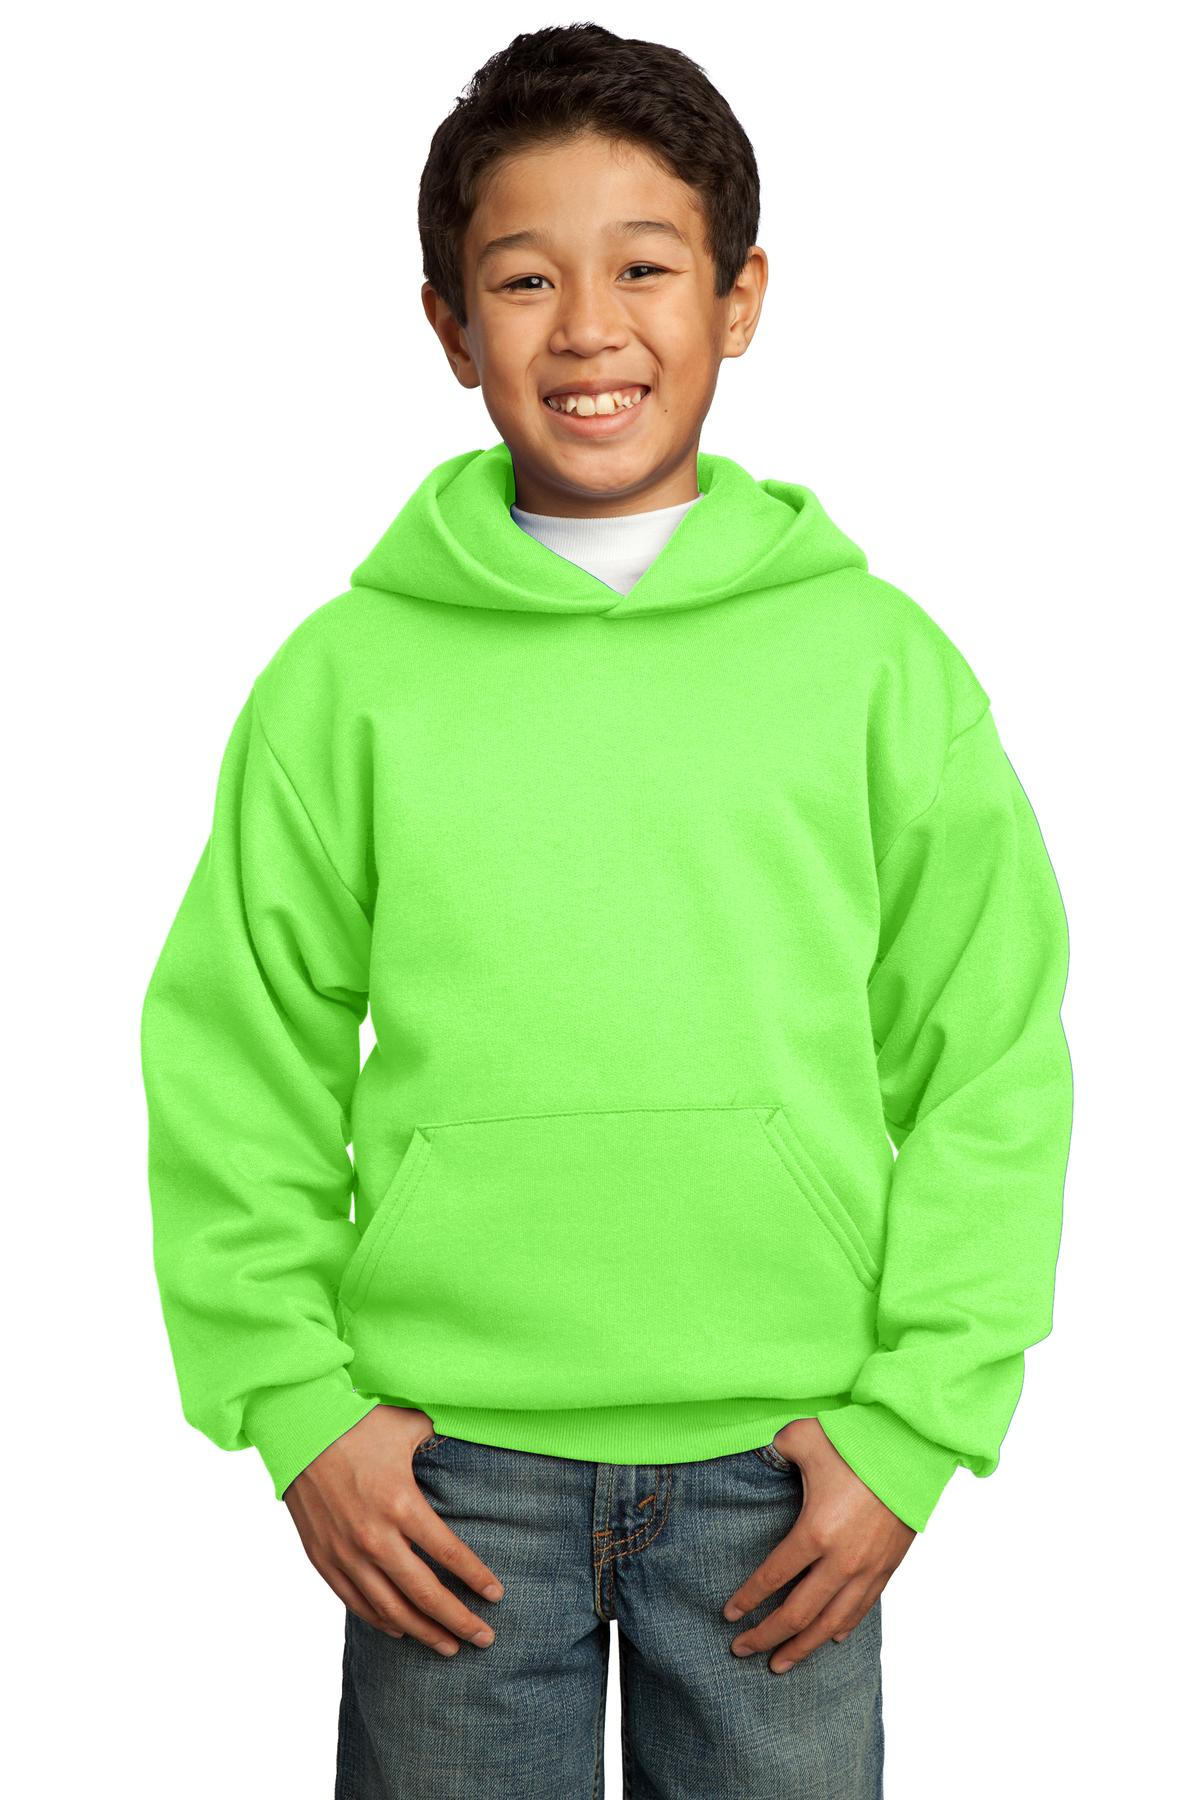 Neon Green Port & Company - Youth Core Fleece Pullover Hooded Sweatshirt.